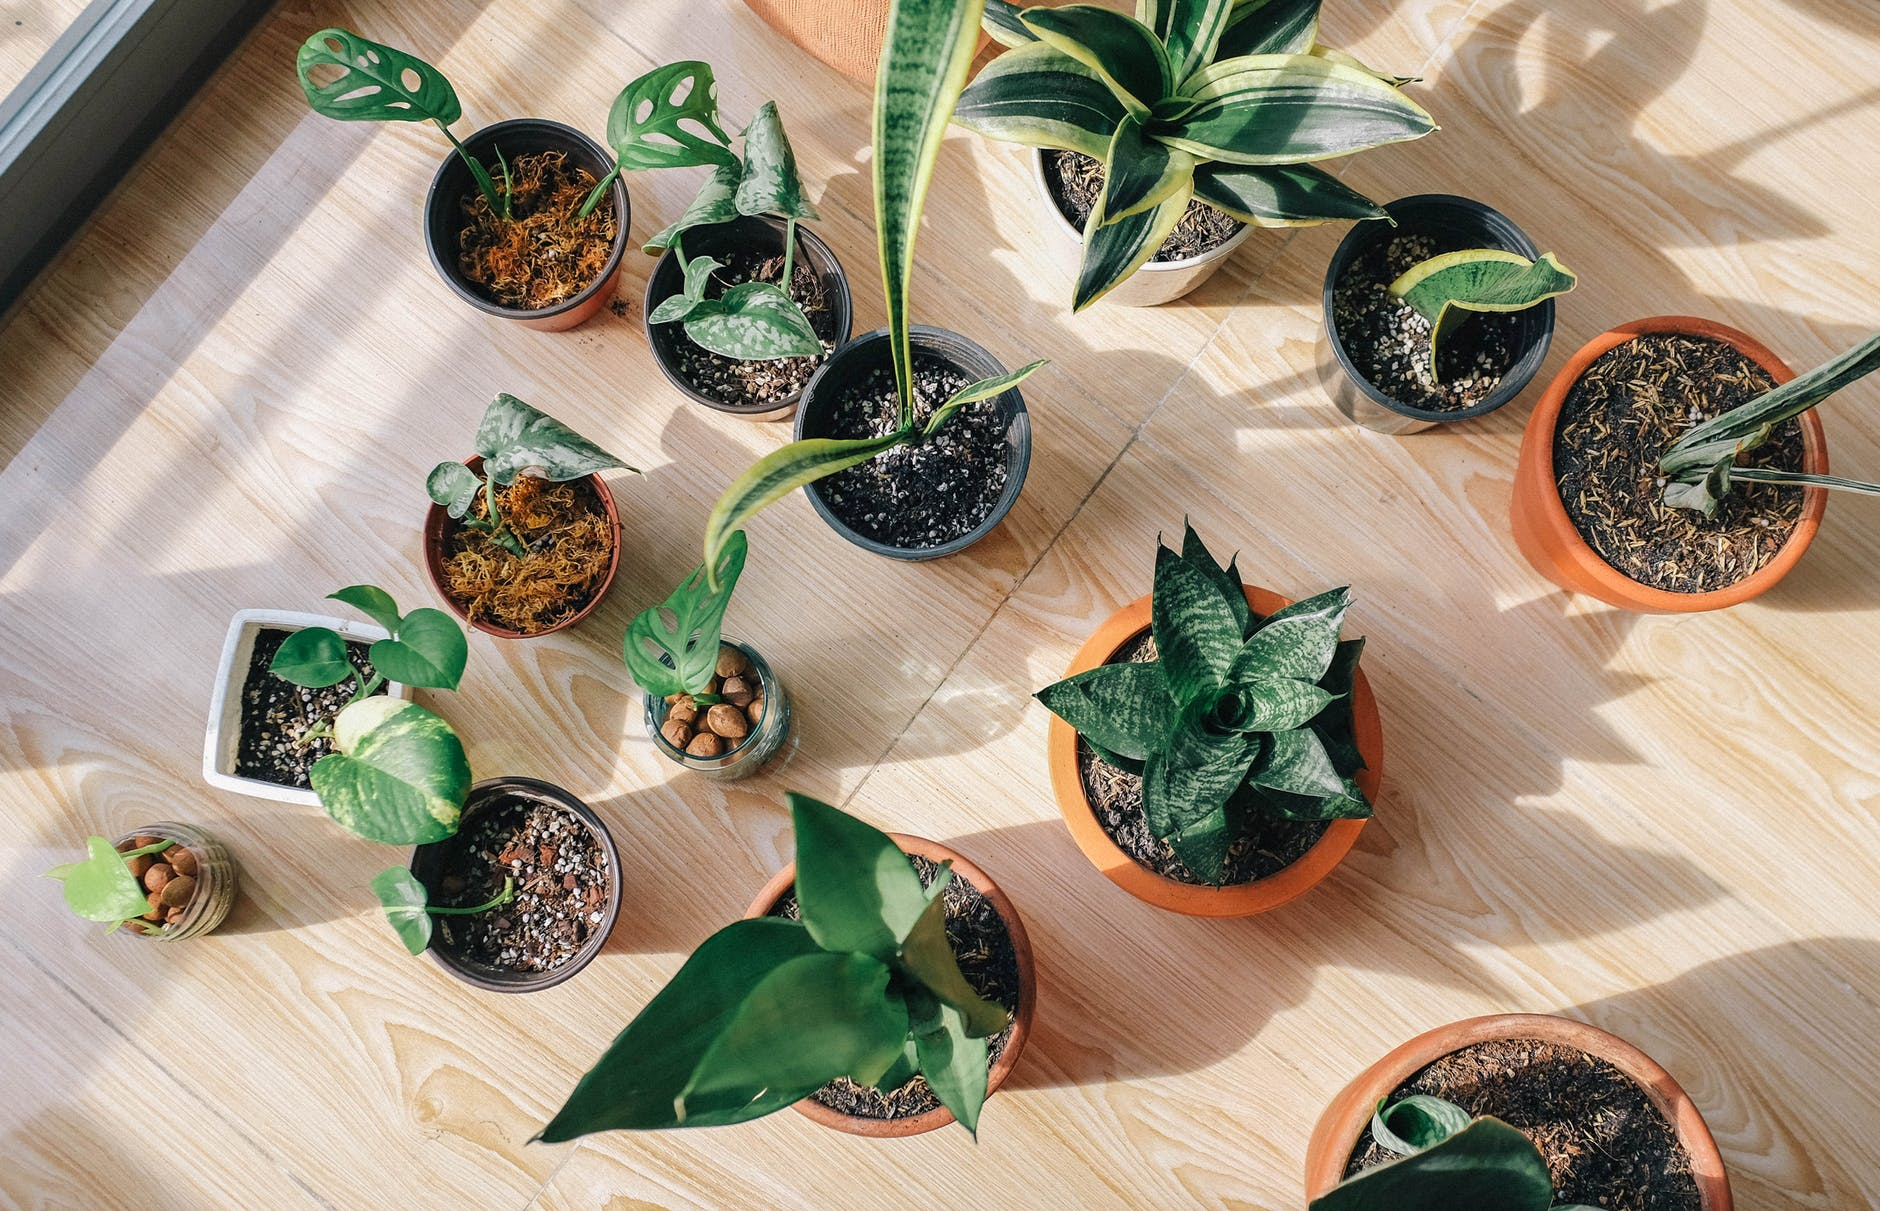 Collection of houseplants grown from cuttings